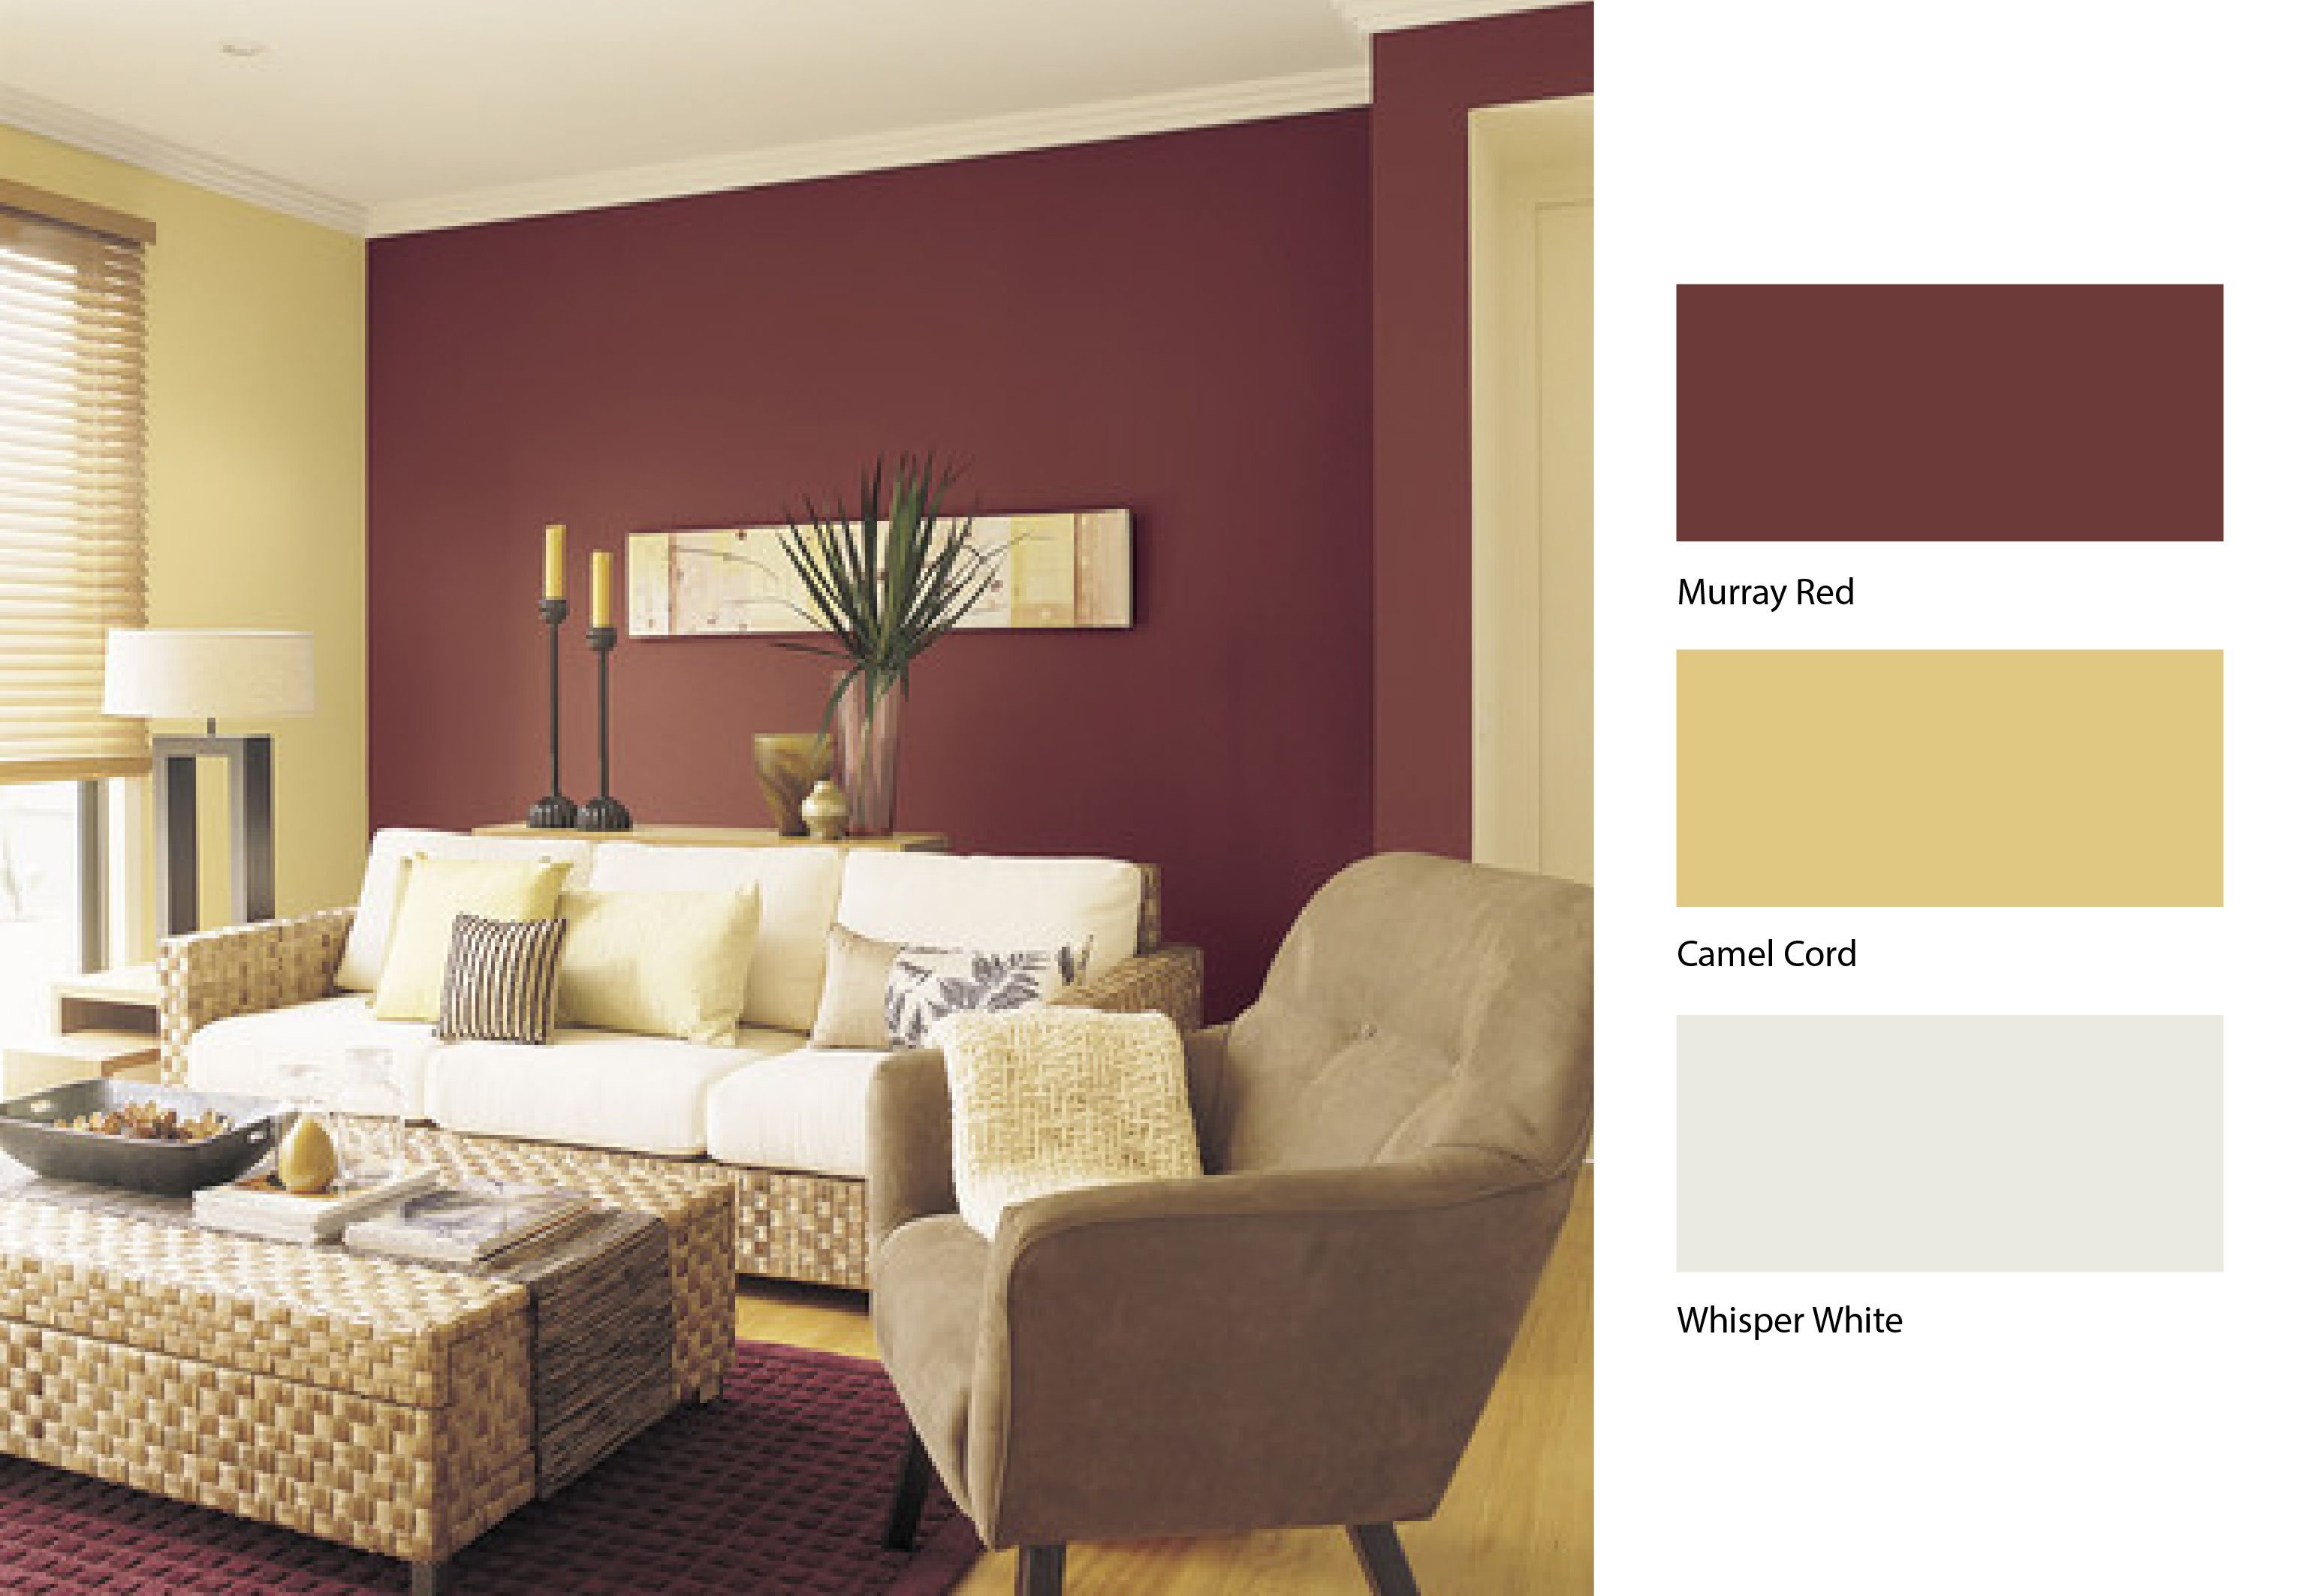 New Colours For Bedrooms Team Dulux Camel Cord With Dulux Murray Red To Breathe New